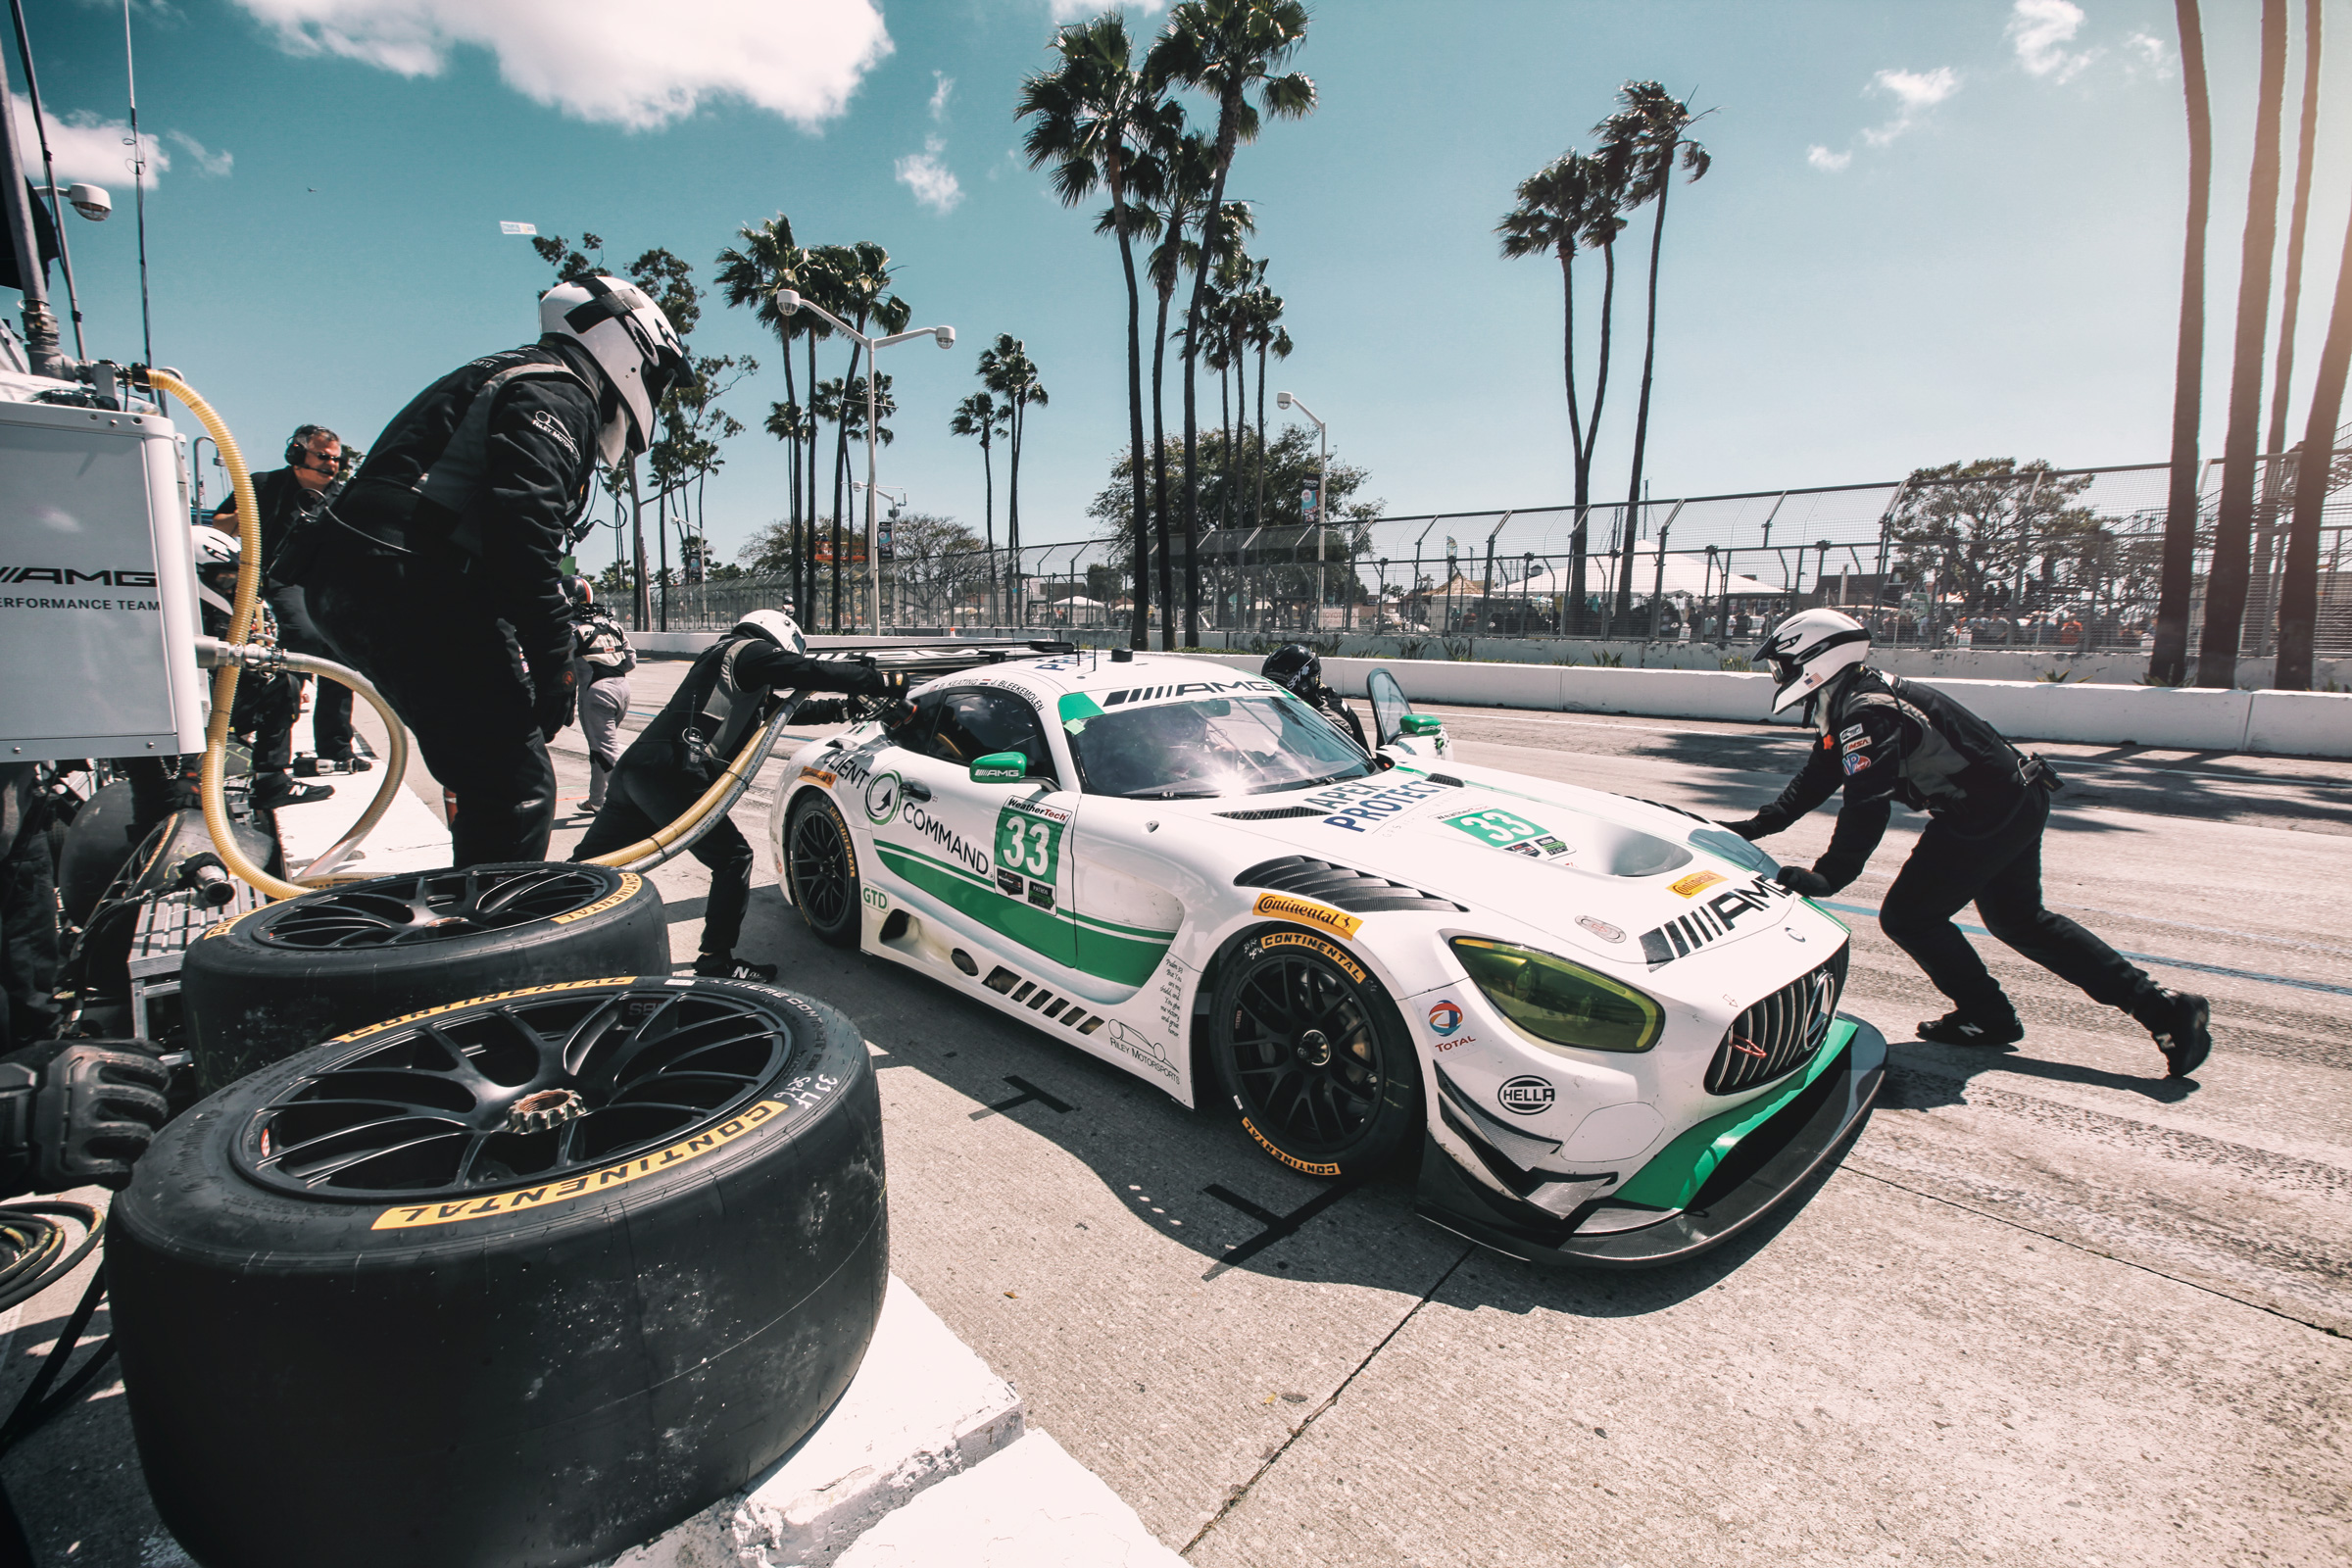 Mechaniker und Mercedes AMG-GT3 von Riley Motorsports in der Boxengasse von Long Beach, Los Angeles. Mechanics and Mercedes AMG-GT3 of Riley Motorsports in the pitlane of Long Beach, Los Angeles